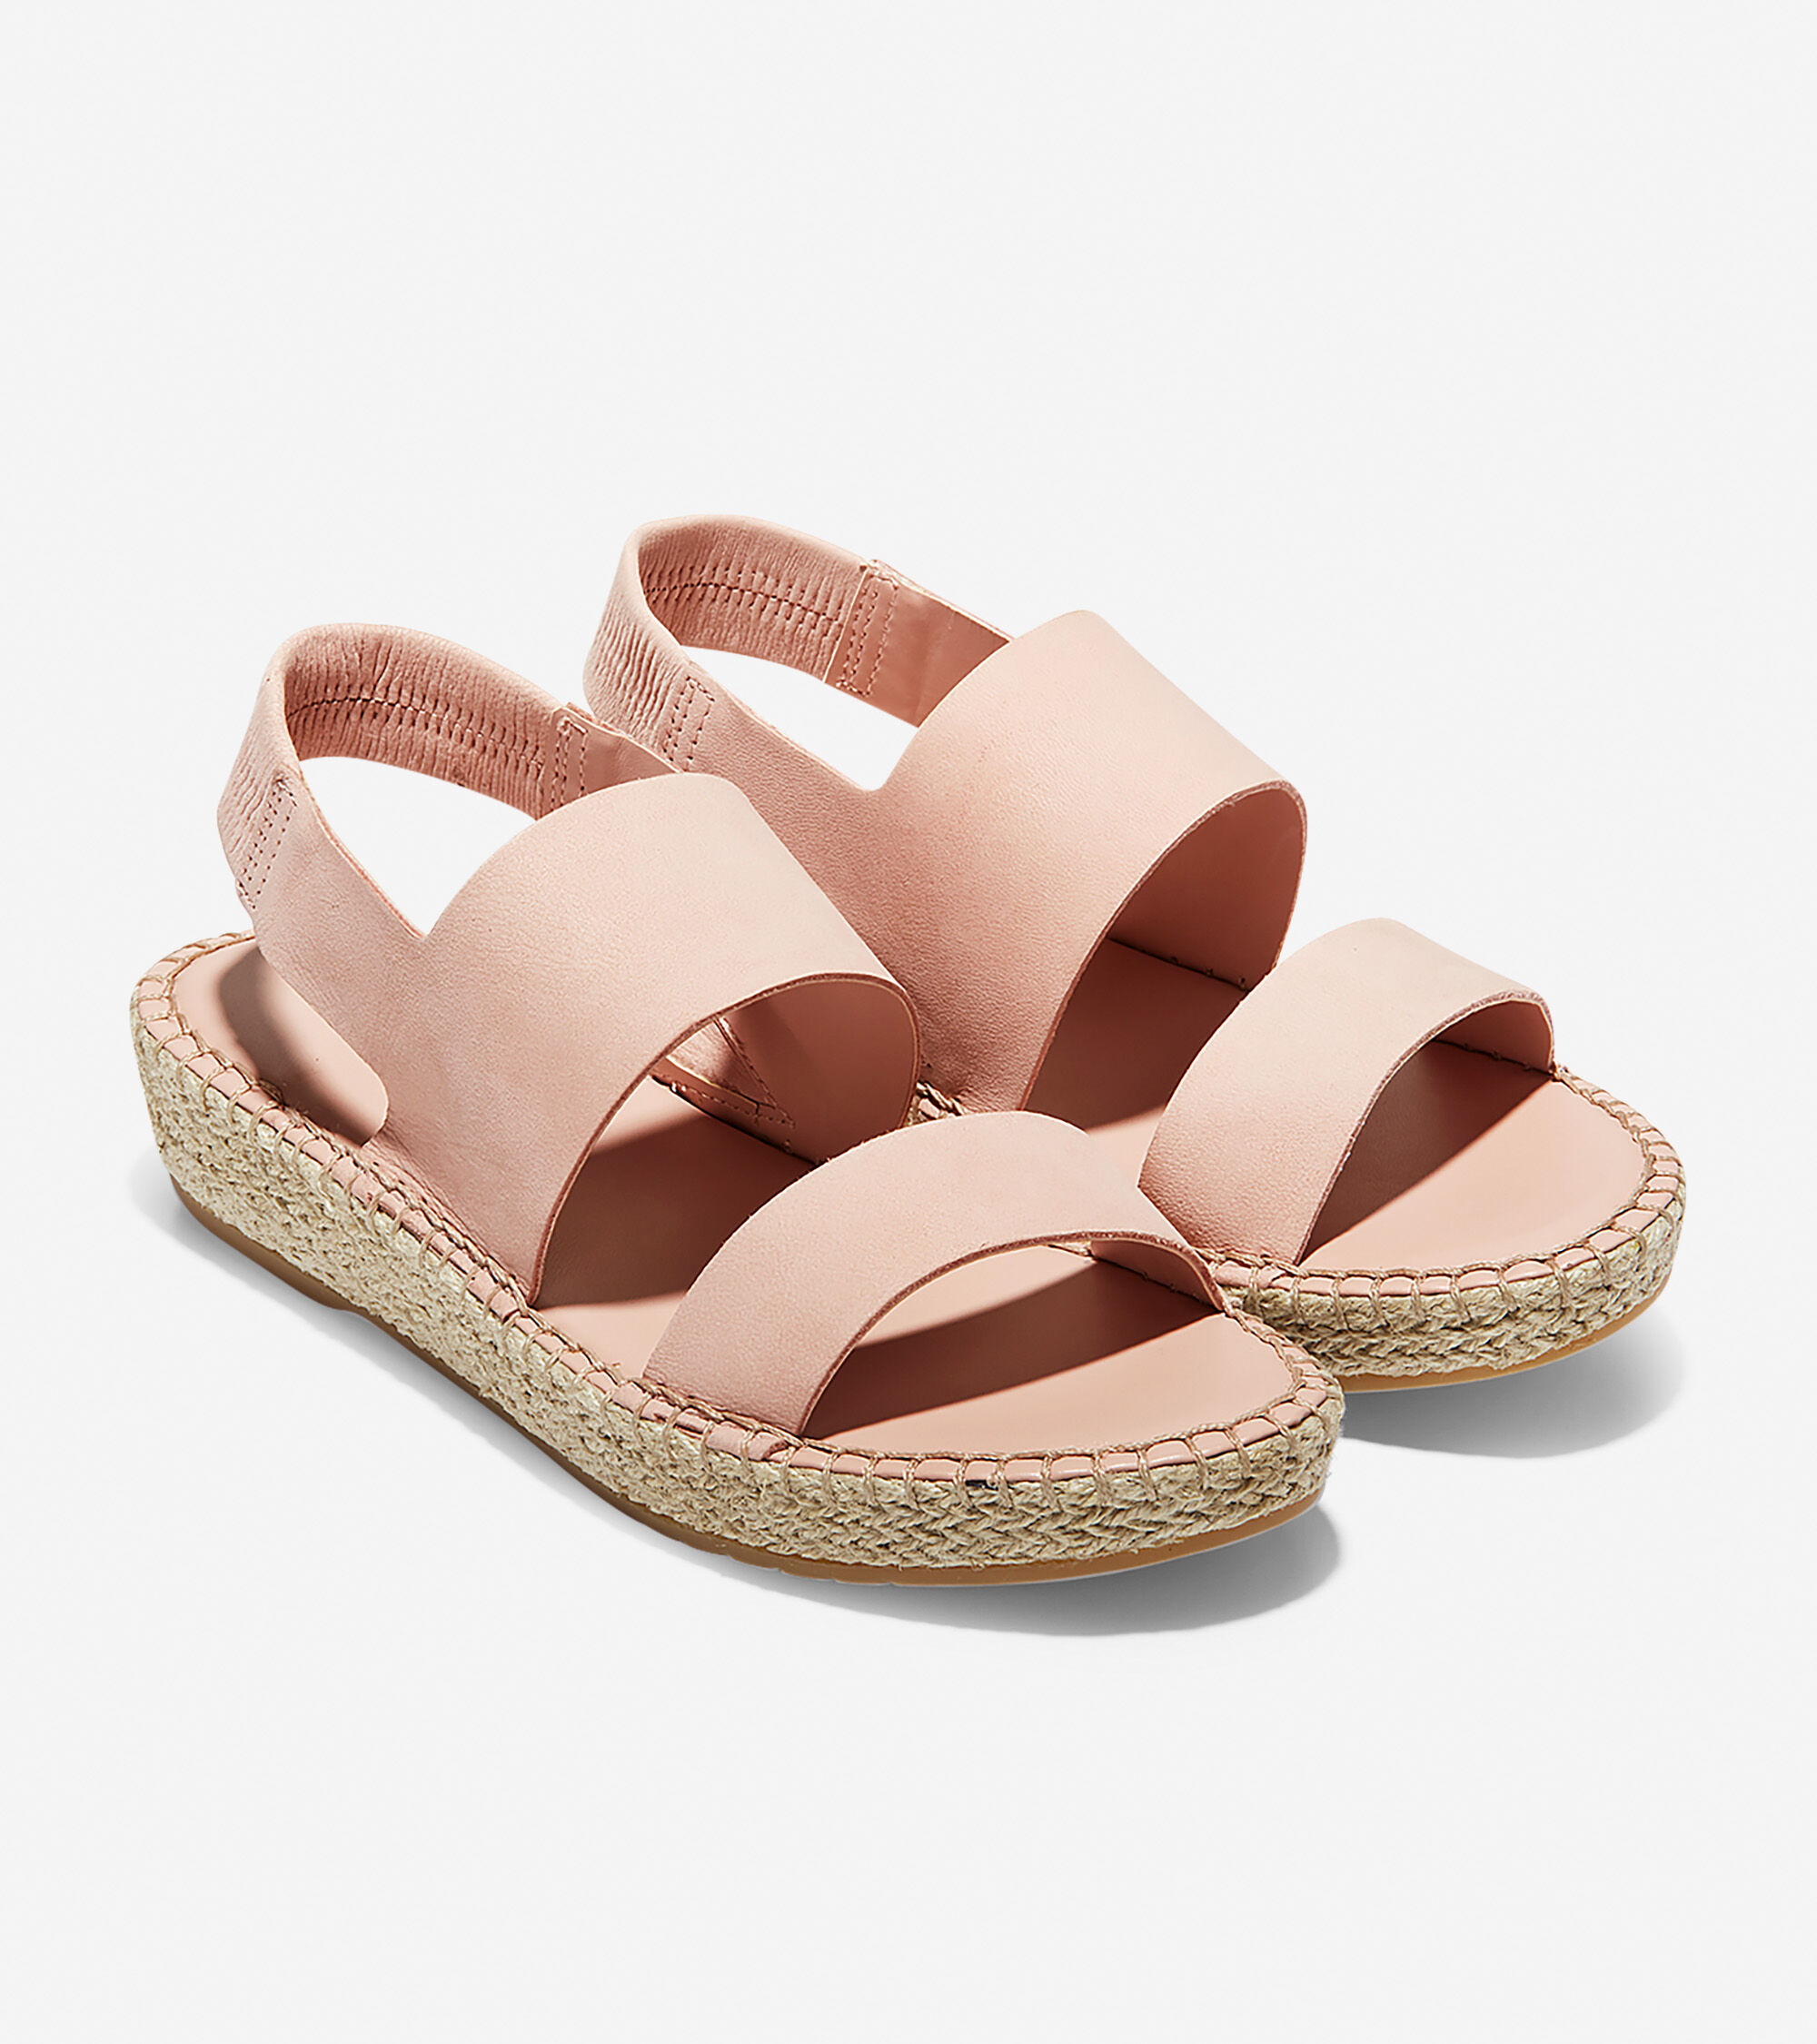 0b95ef5f68c Women s Cloudfeel Espadrille Wedges Sandals in Mahogany Rose